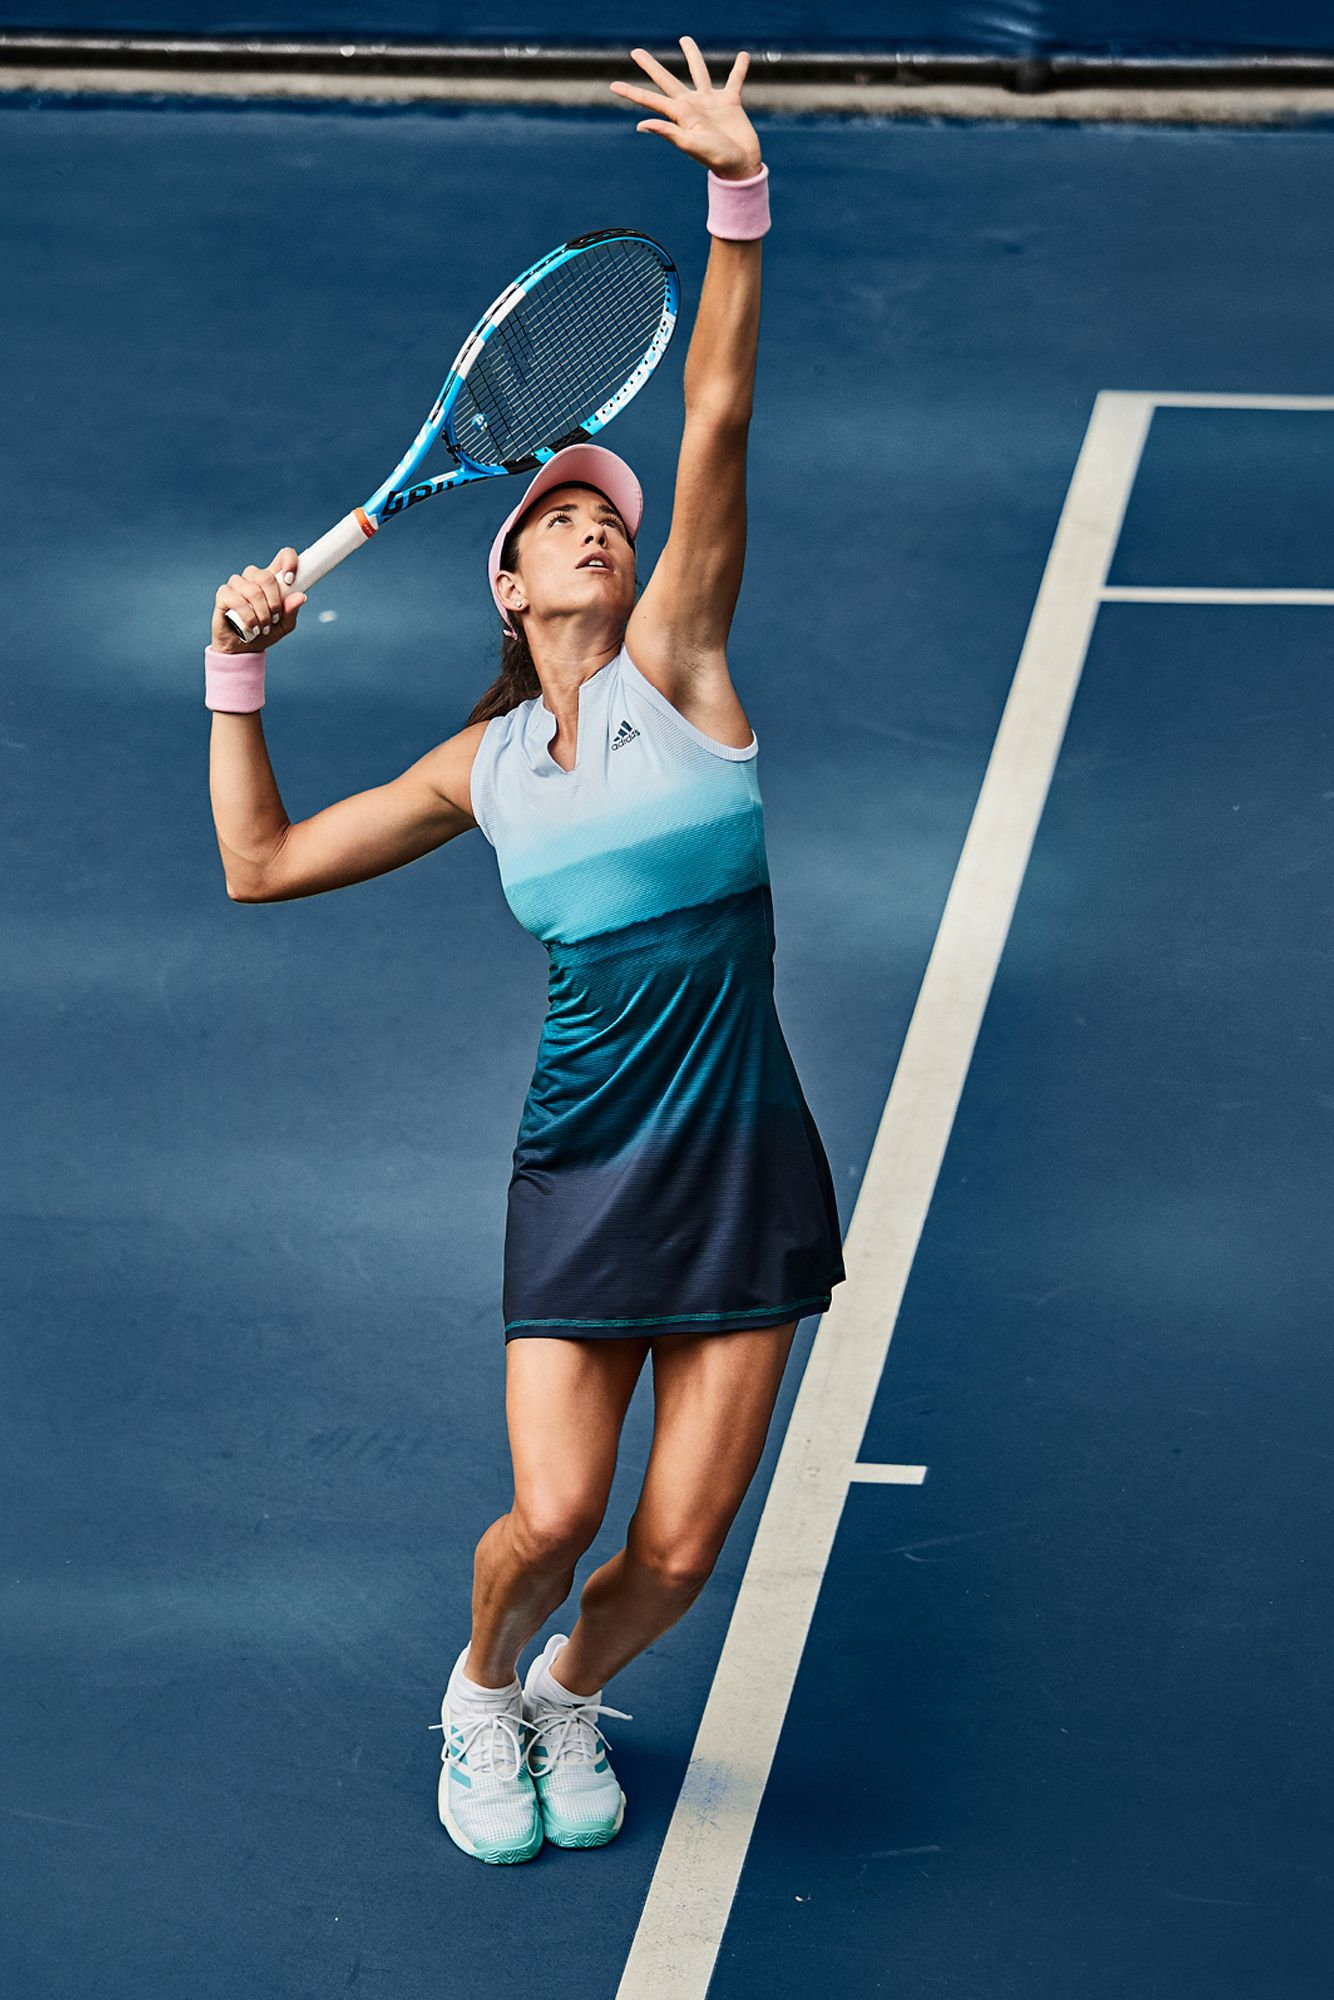 Adidas Women S Parley Collection Tennis Outfit Women Tennis Clothes Adidas Tennis Outfit